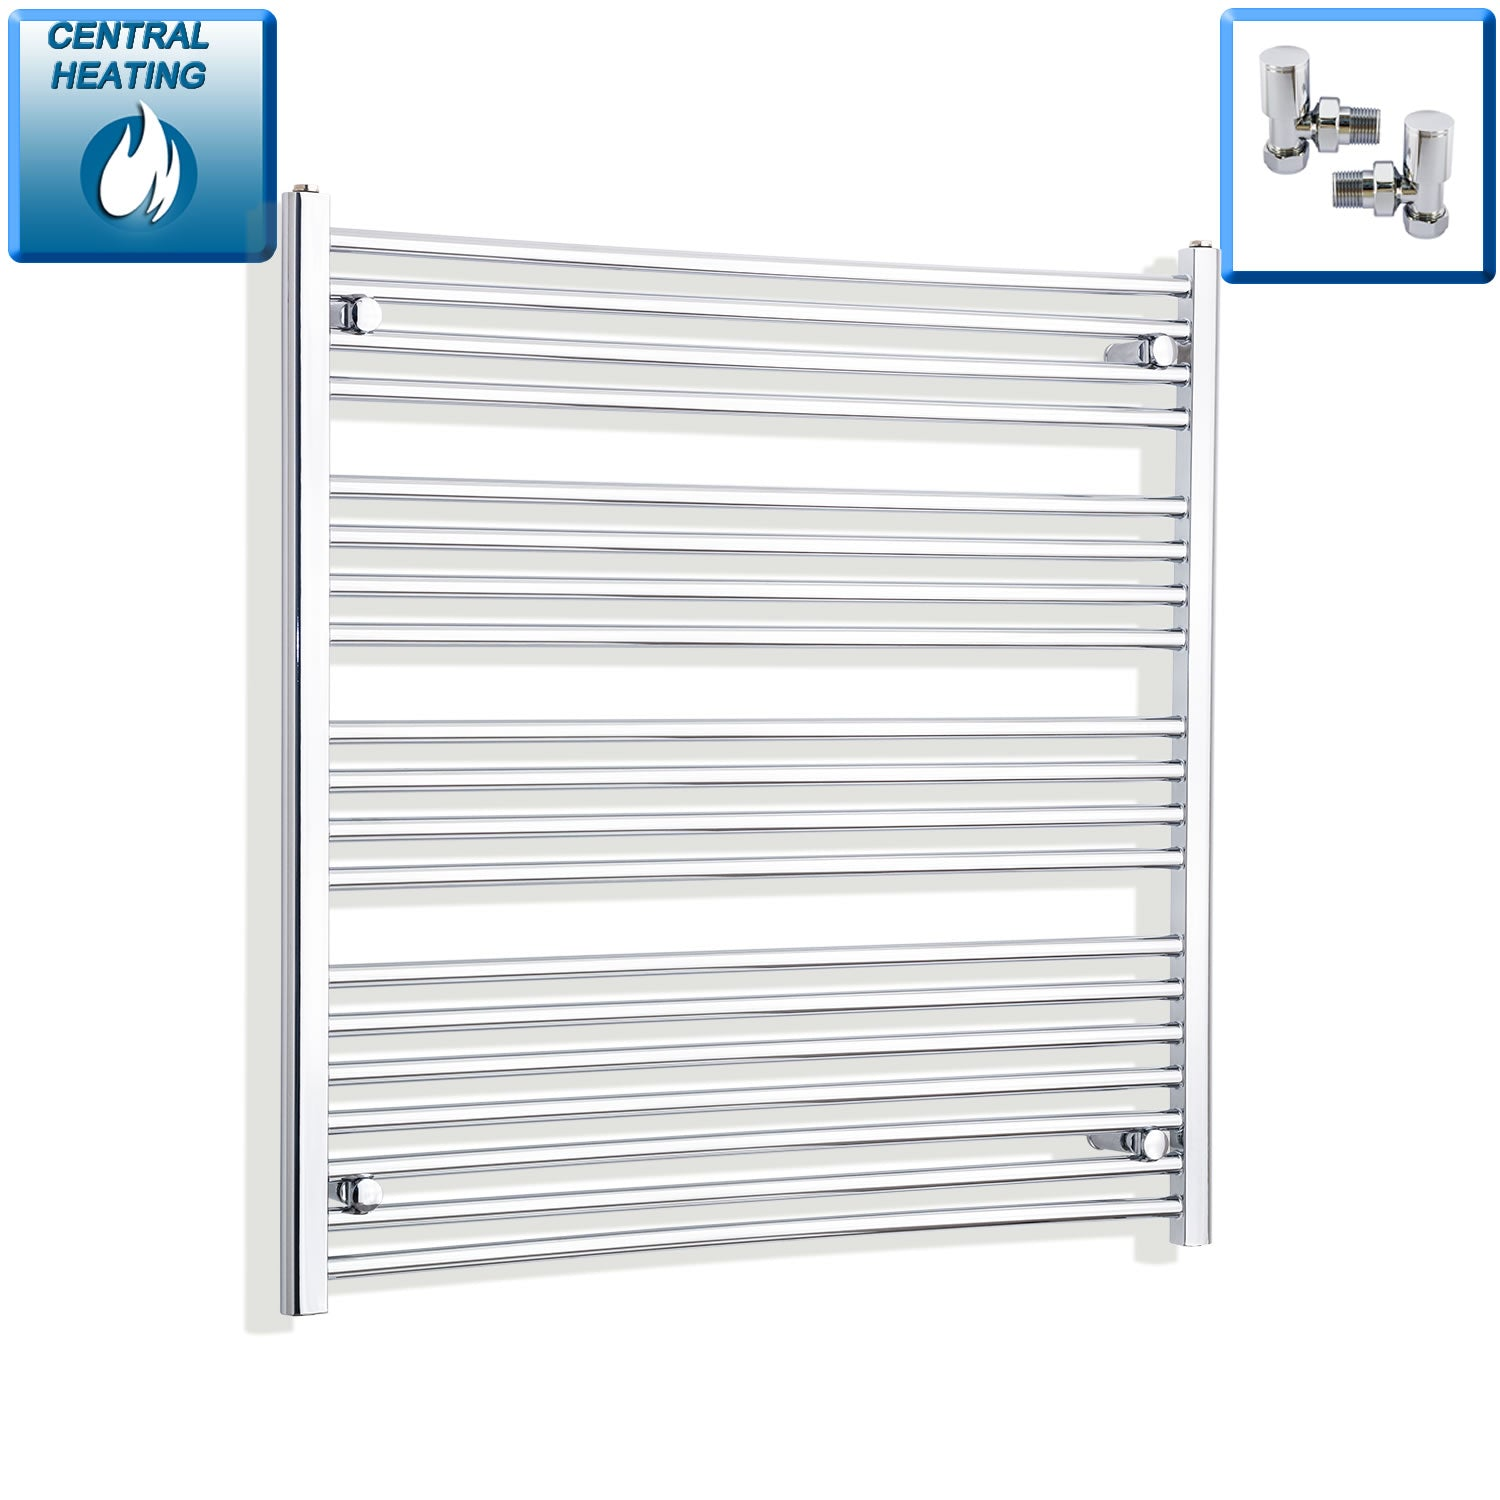 1100mm Wide 1000mm High Flat Chrome Heated Towel Rail Radiator HTR,With Angled Valve